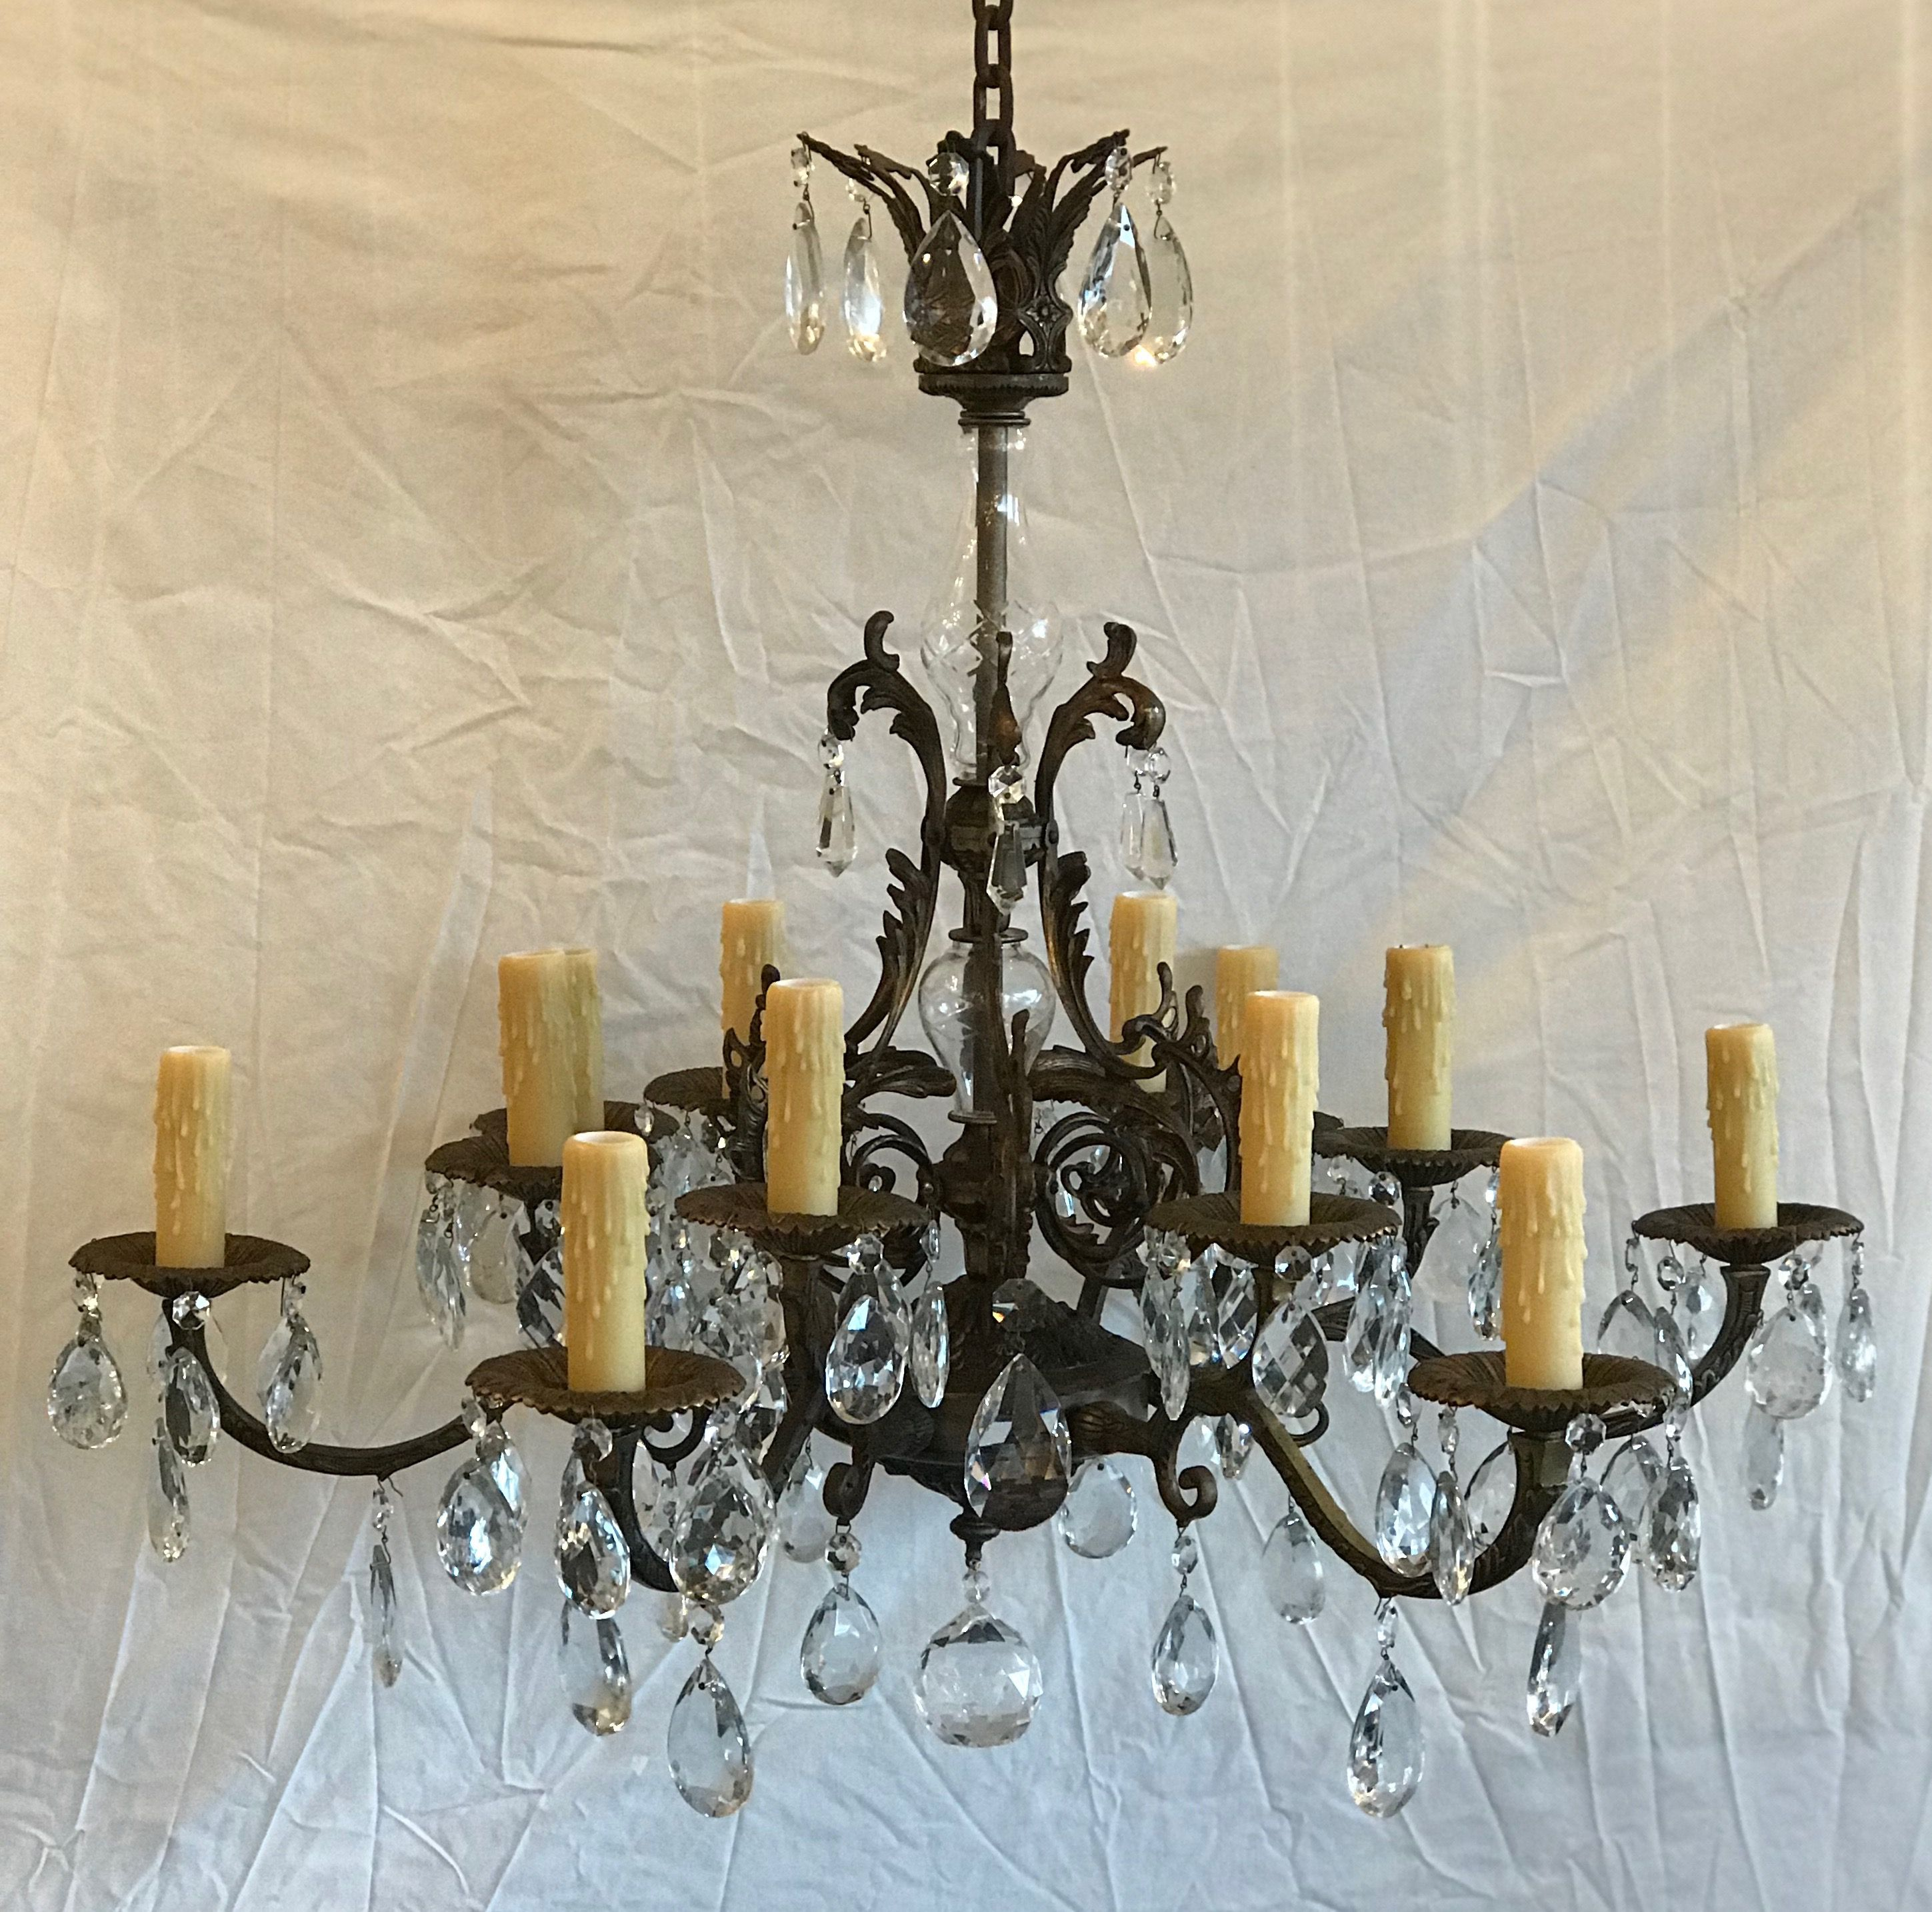 12 Light Spanish Bronze Chandelier With Crystal Tear Drops